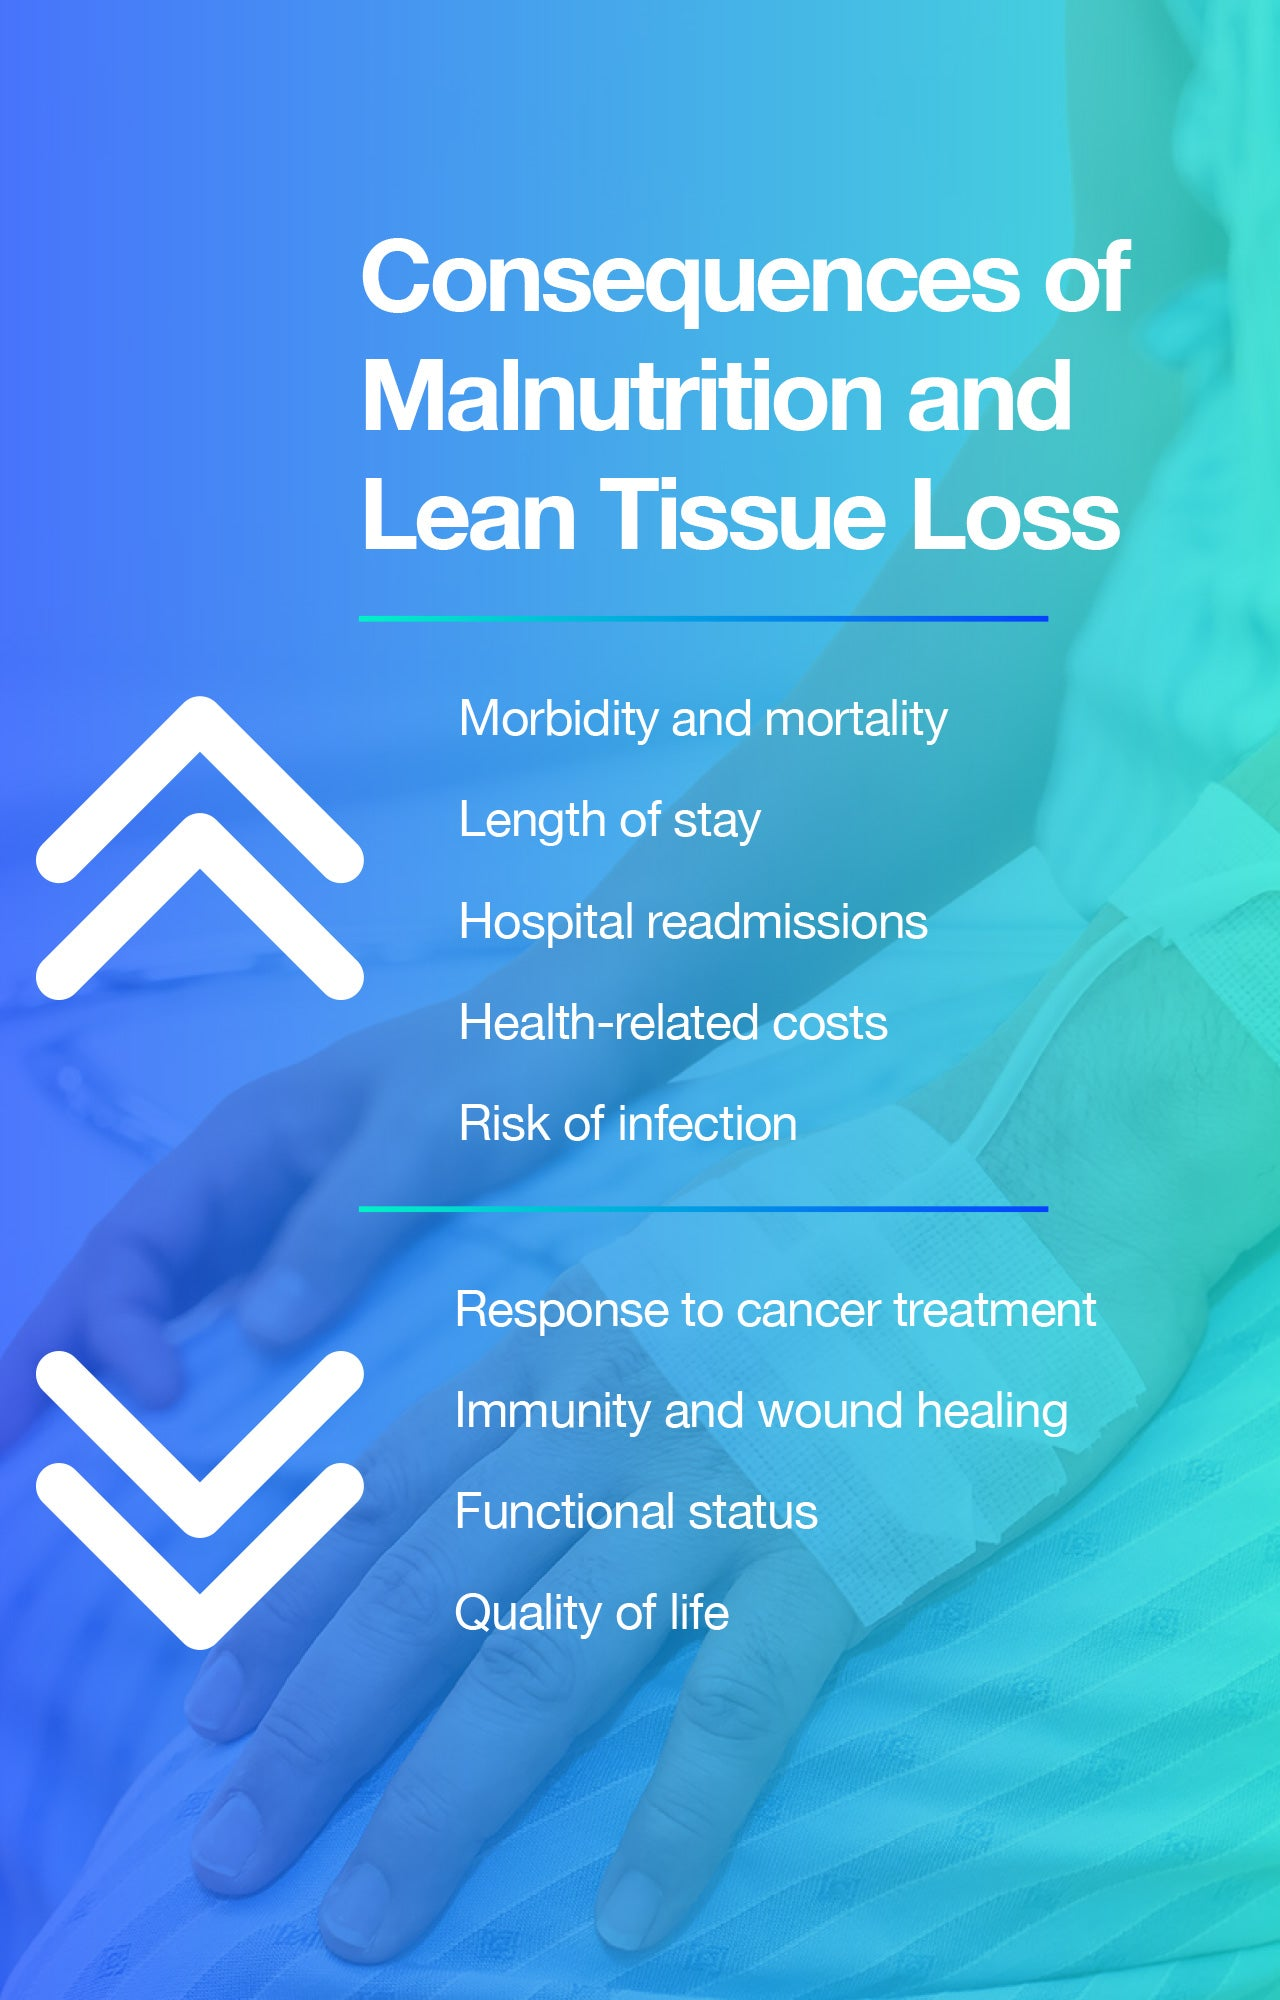 Consequences of Malnutrition and Lean Tissue Loss